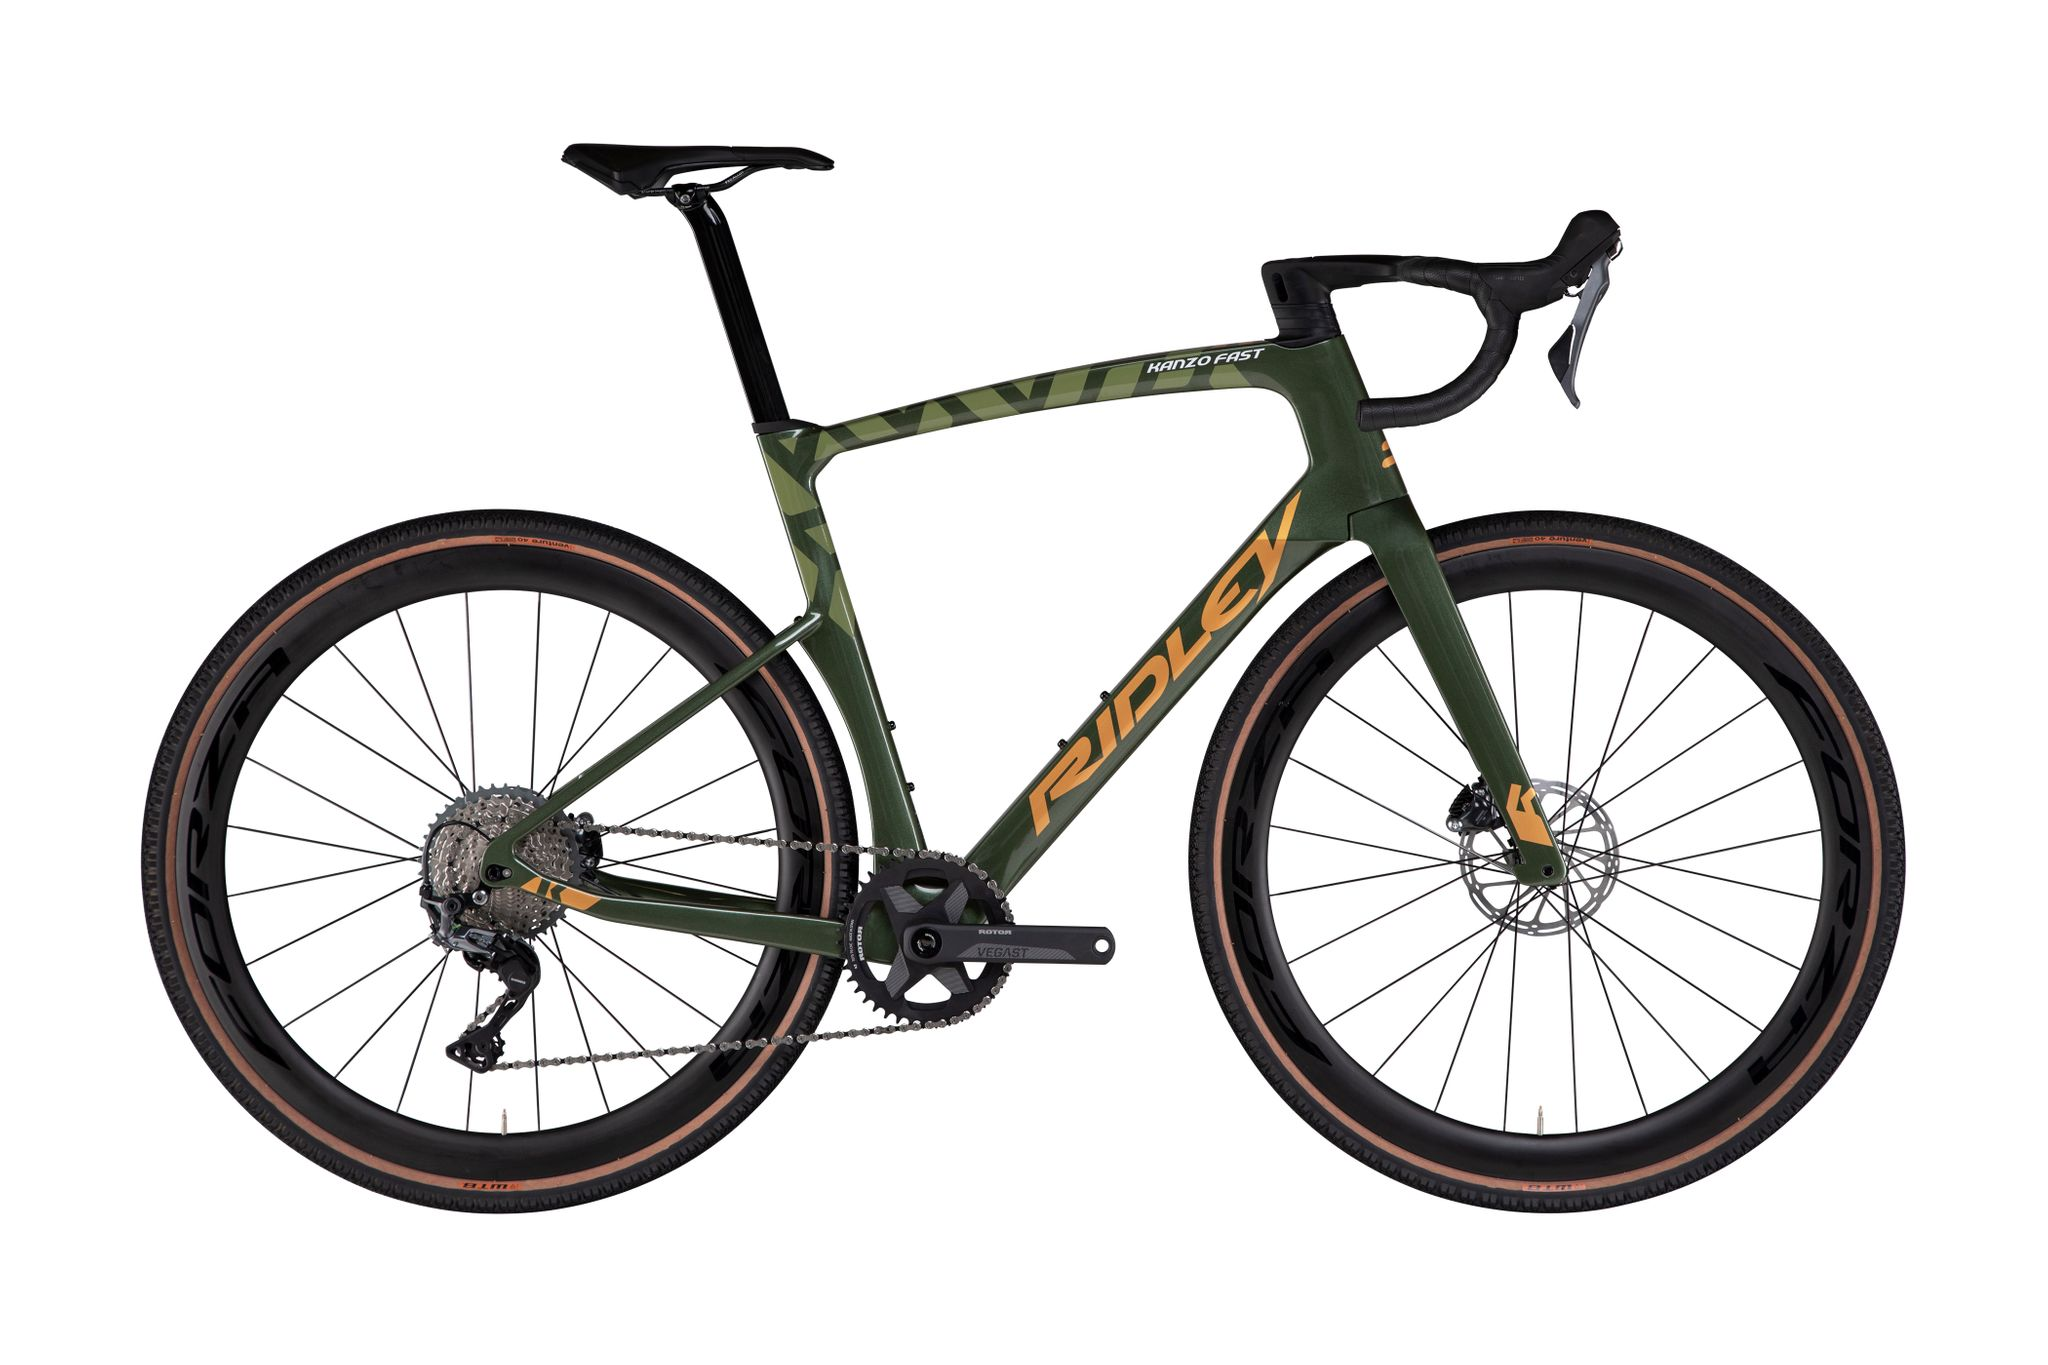 Ridley Kanzo Fast Complete bike